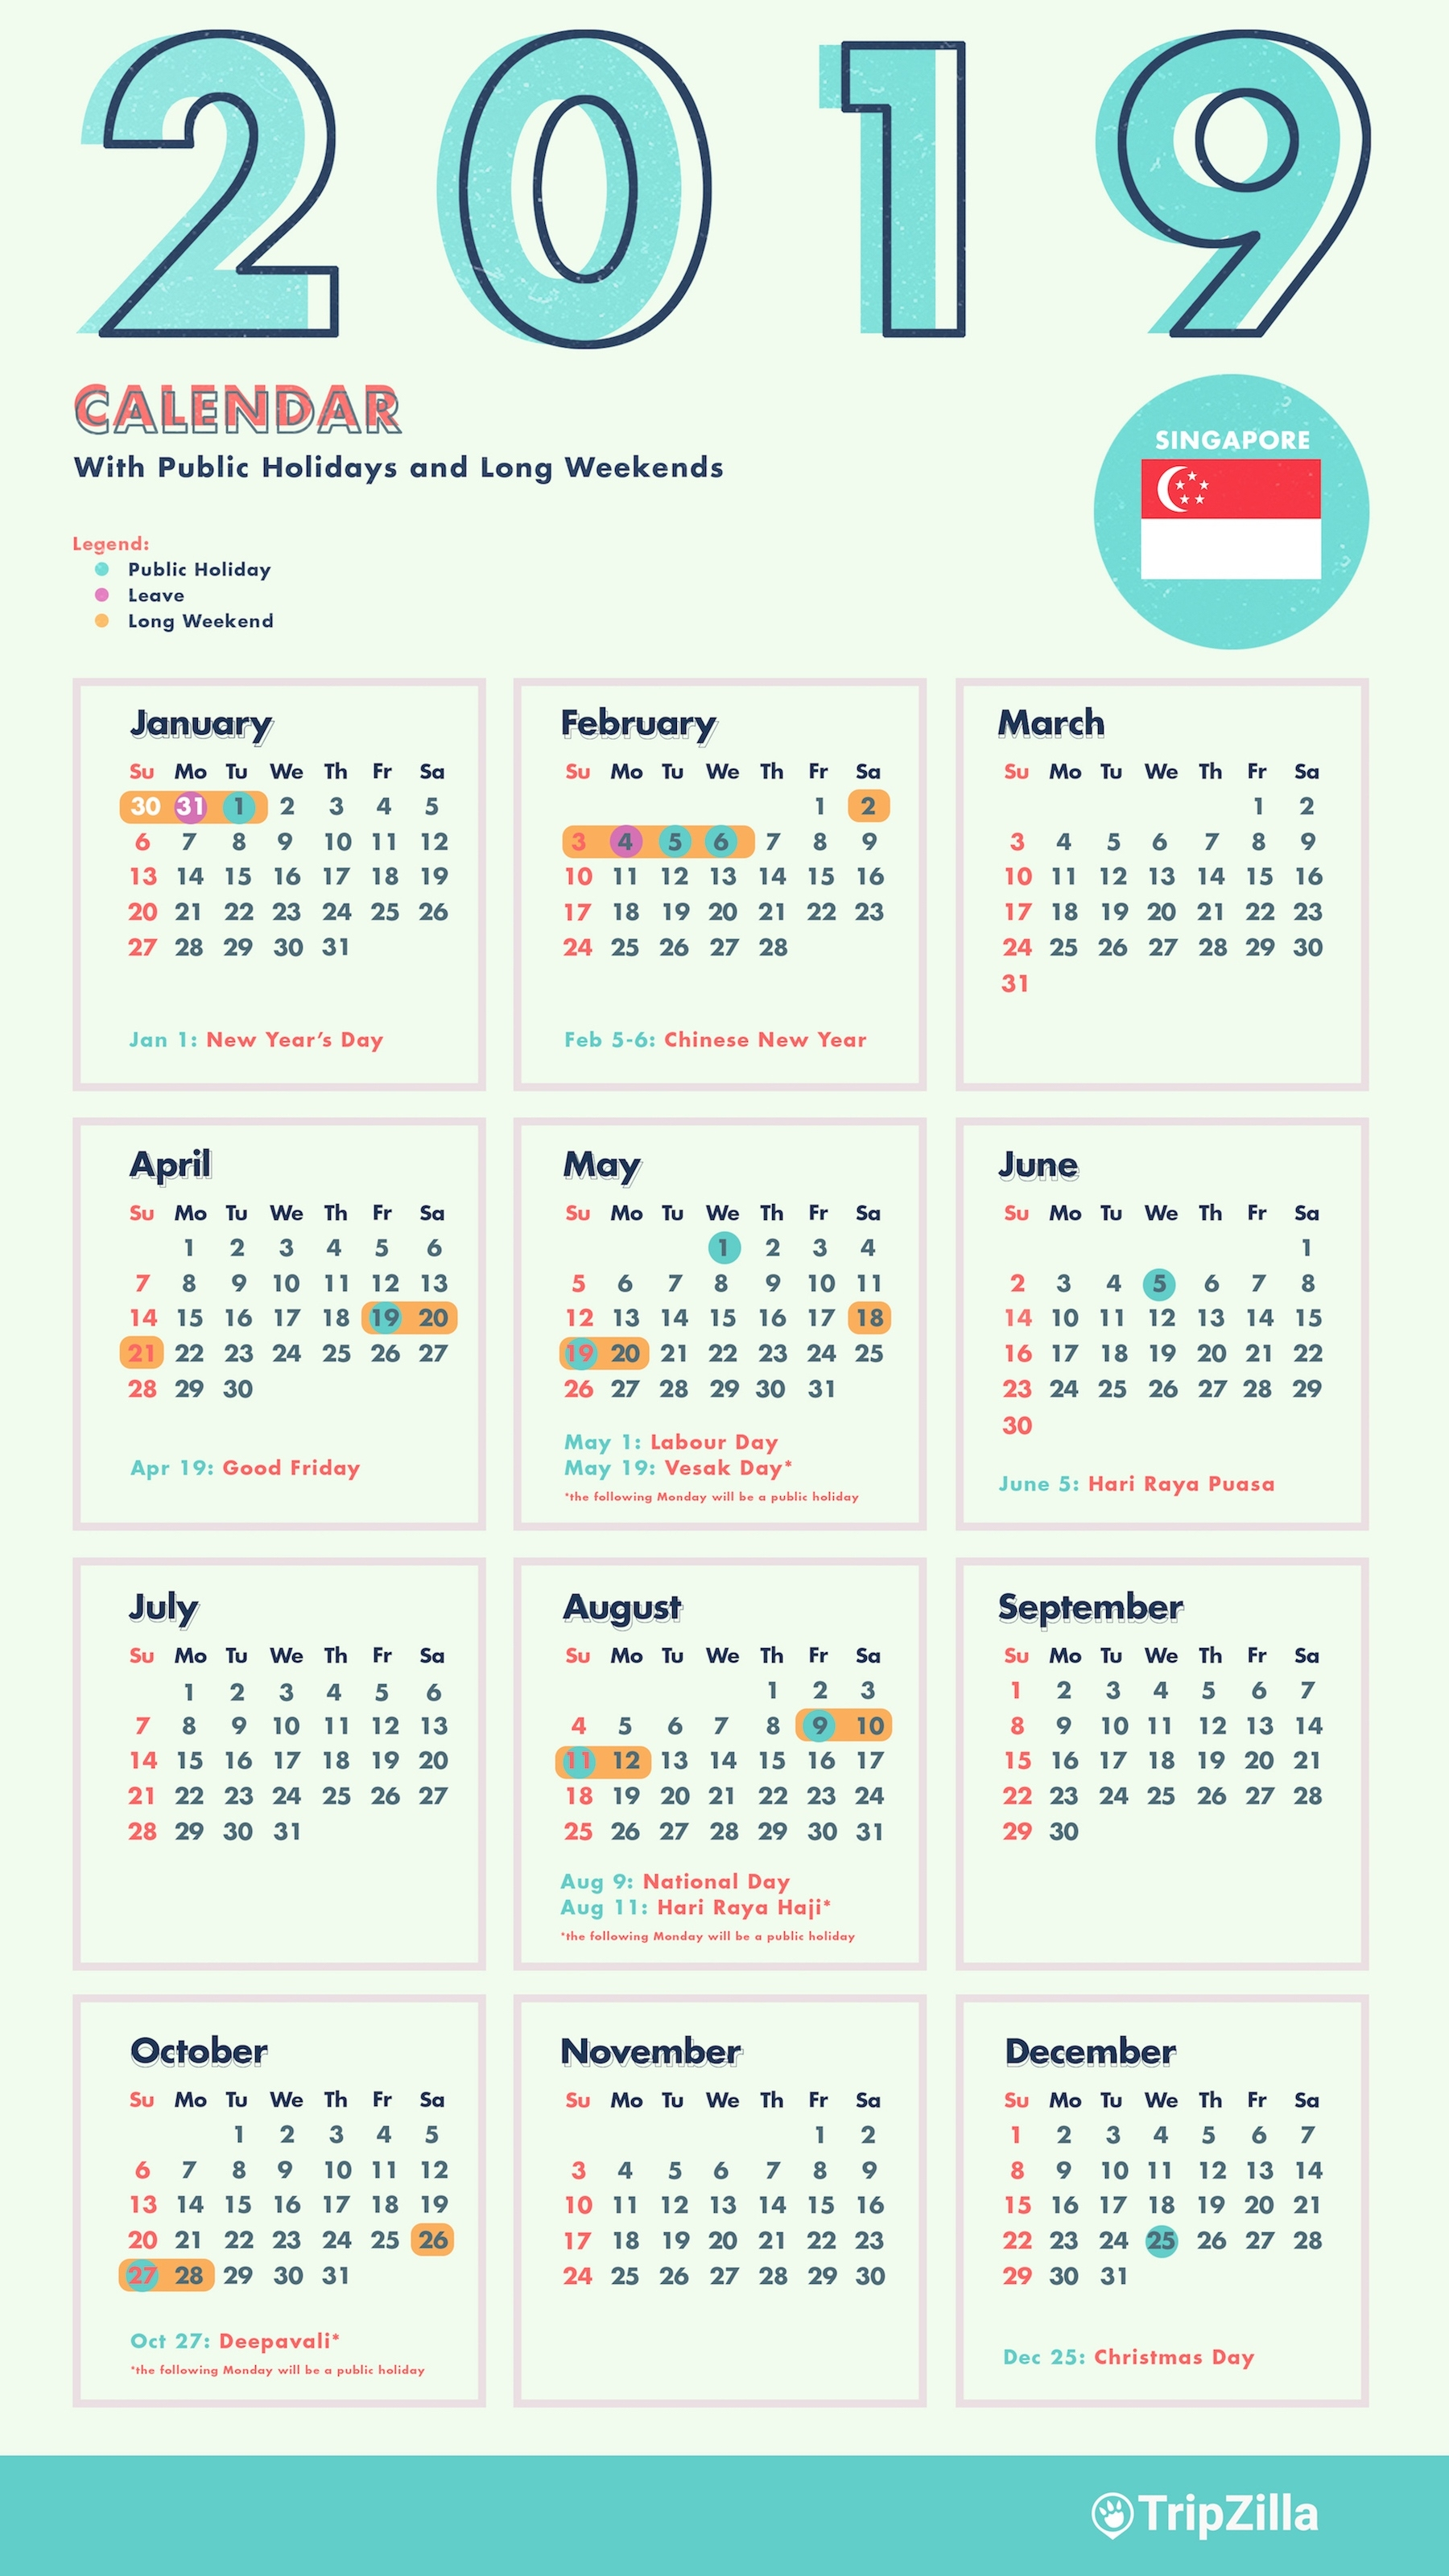 6 Long Weekends In Singapore In 2019 (Bonus Calendar & Cheatsheet) Iphone 5 Calendar Public Holidays